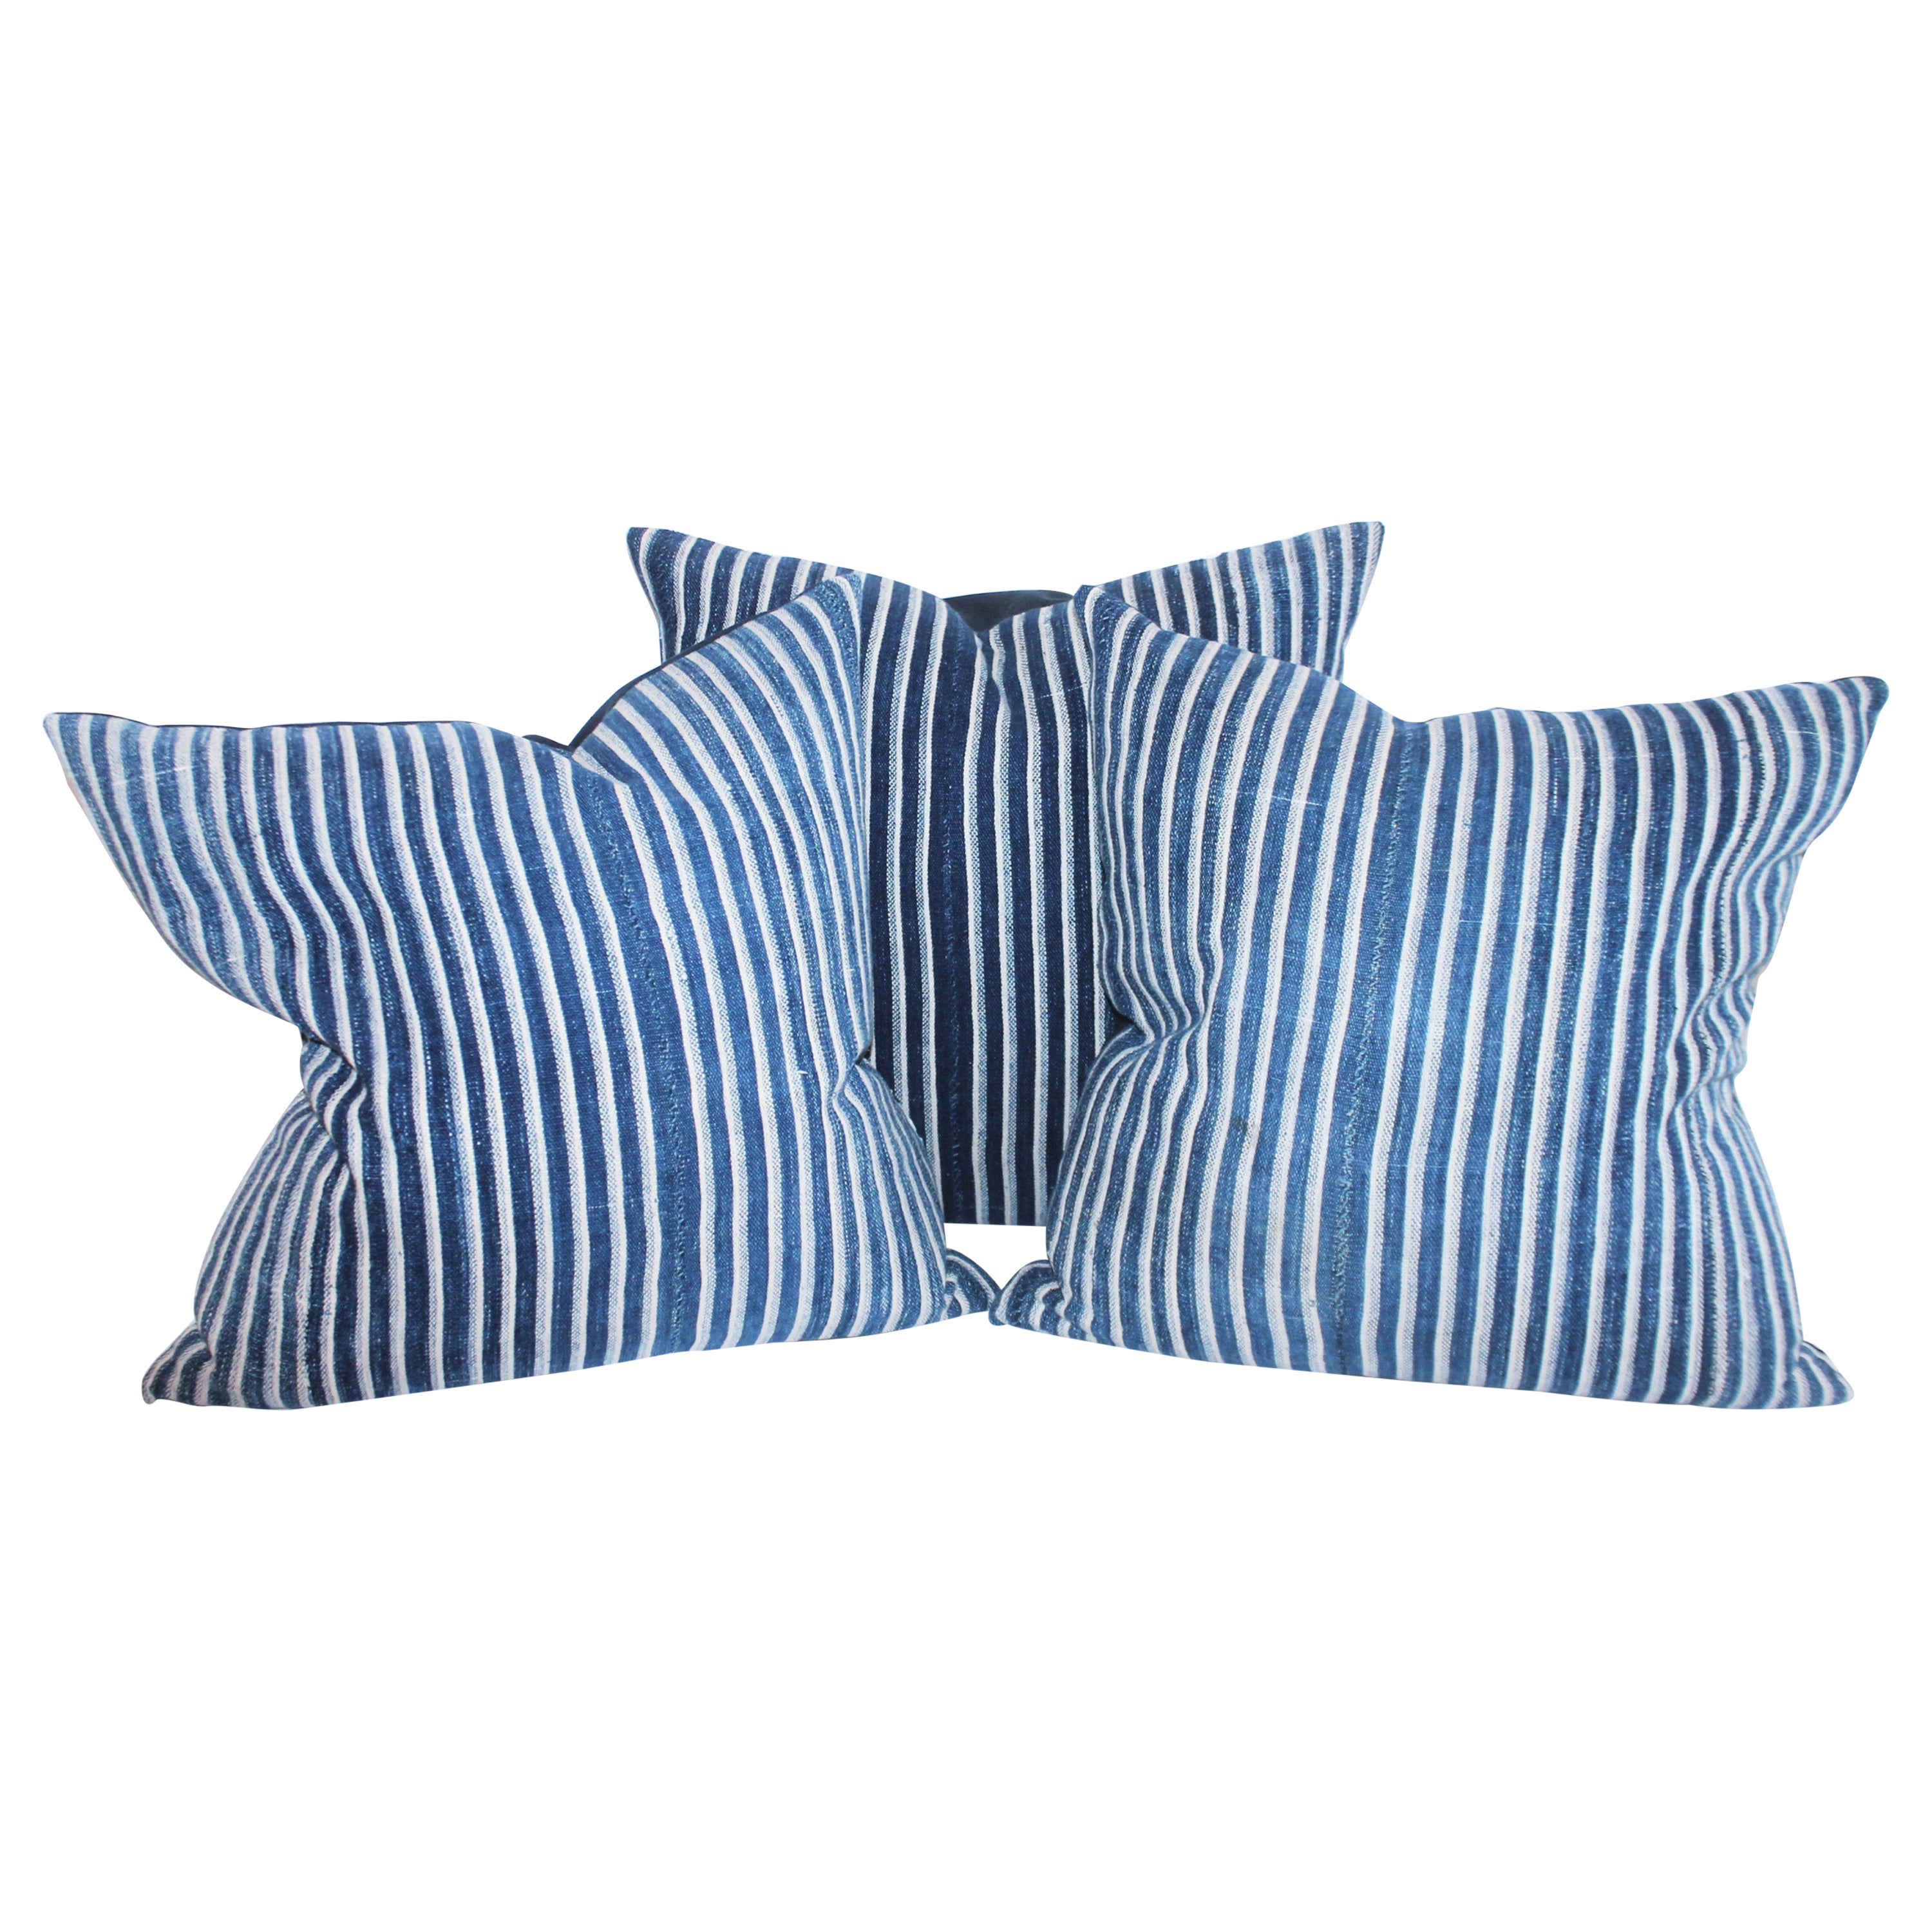 Collection of 19th Century Ticking Pillows-Faded Indigo Stripes